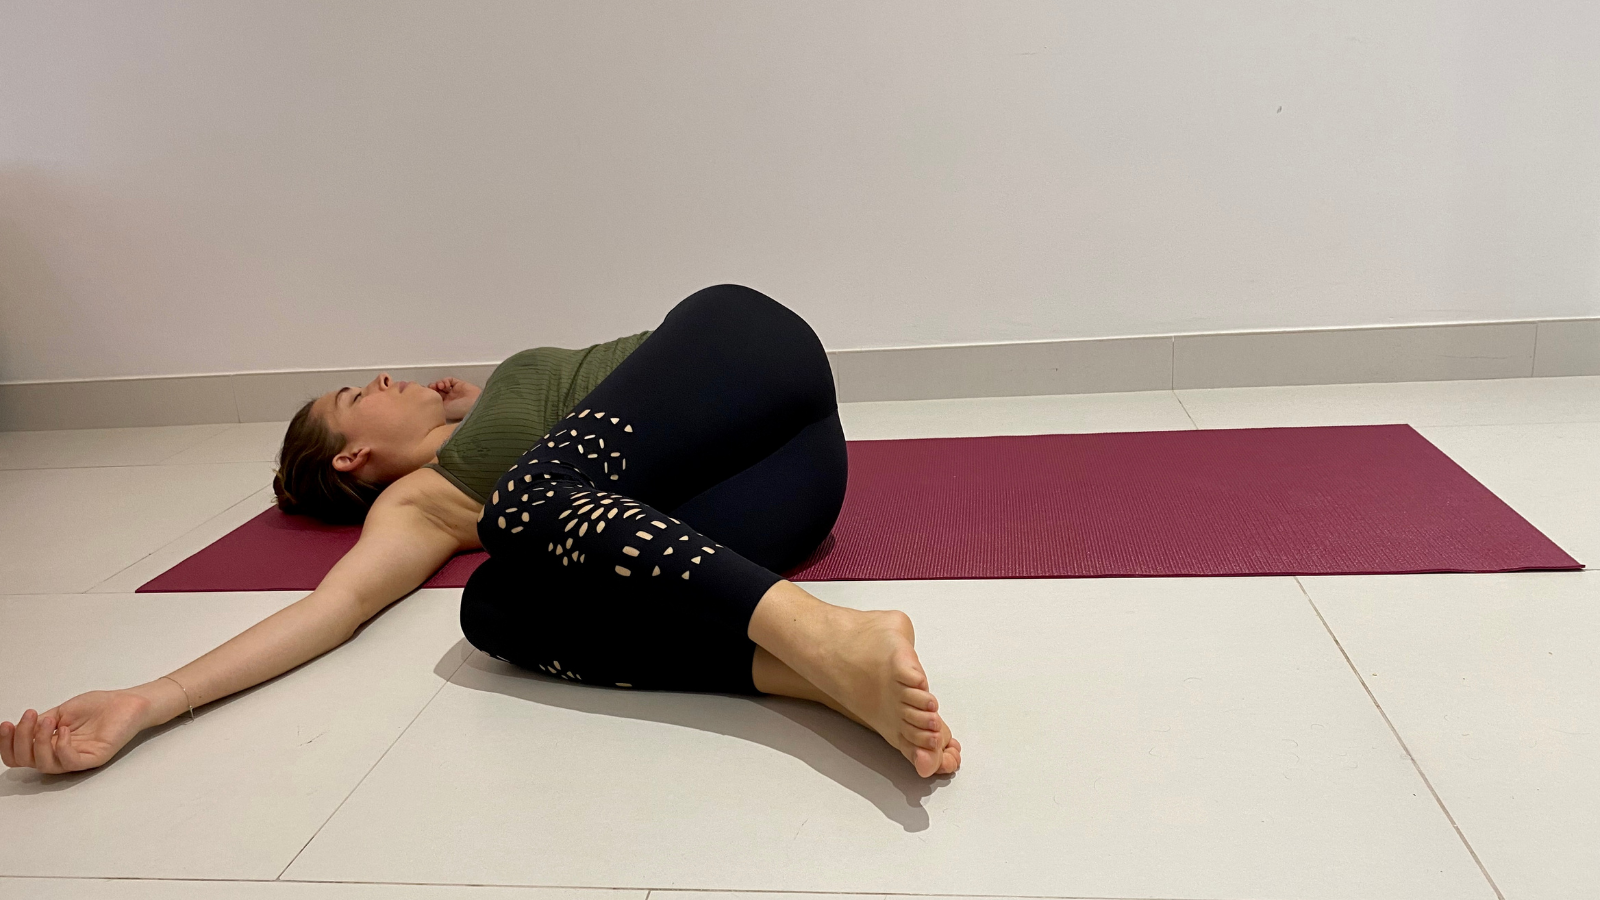 How to practicing twisting spine yoga poses in Revolved Belly Pose (Jathara Parivrttanasana) to ease back pain